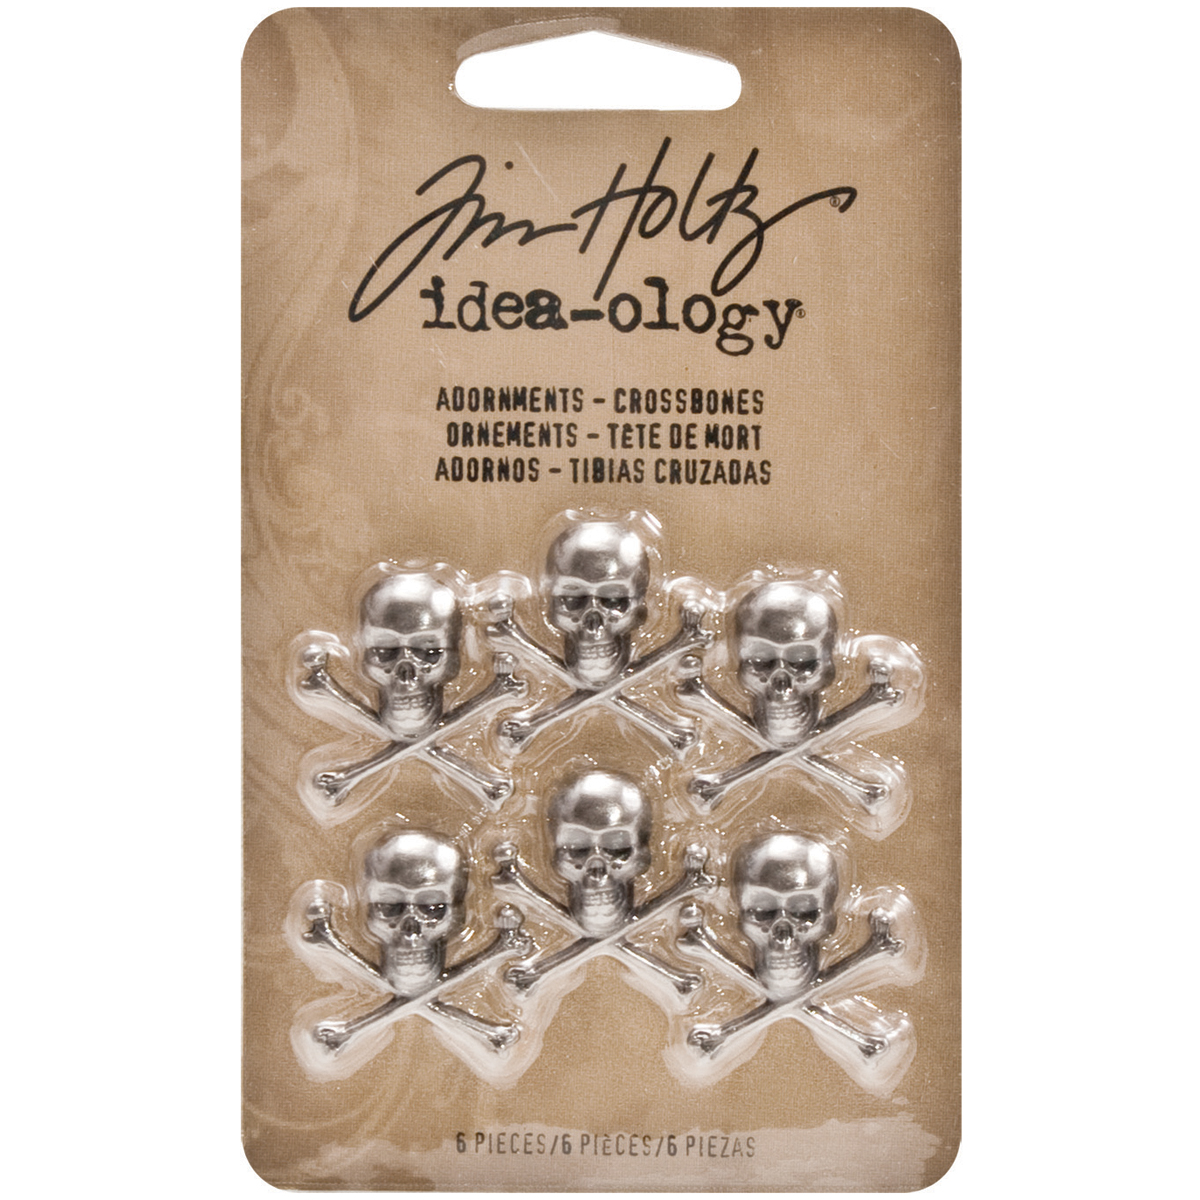 Idea-Ology Metal Adornments 6/Pkg-Antique Nickel Skull/Crossbones .75X.75